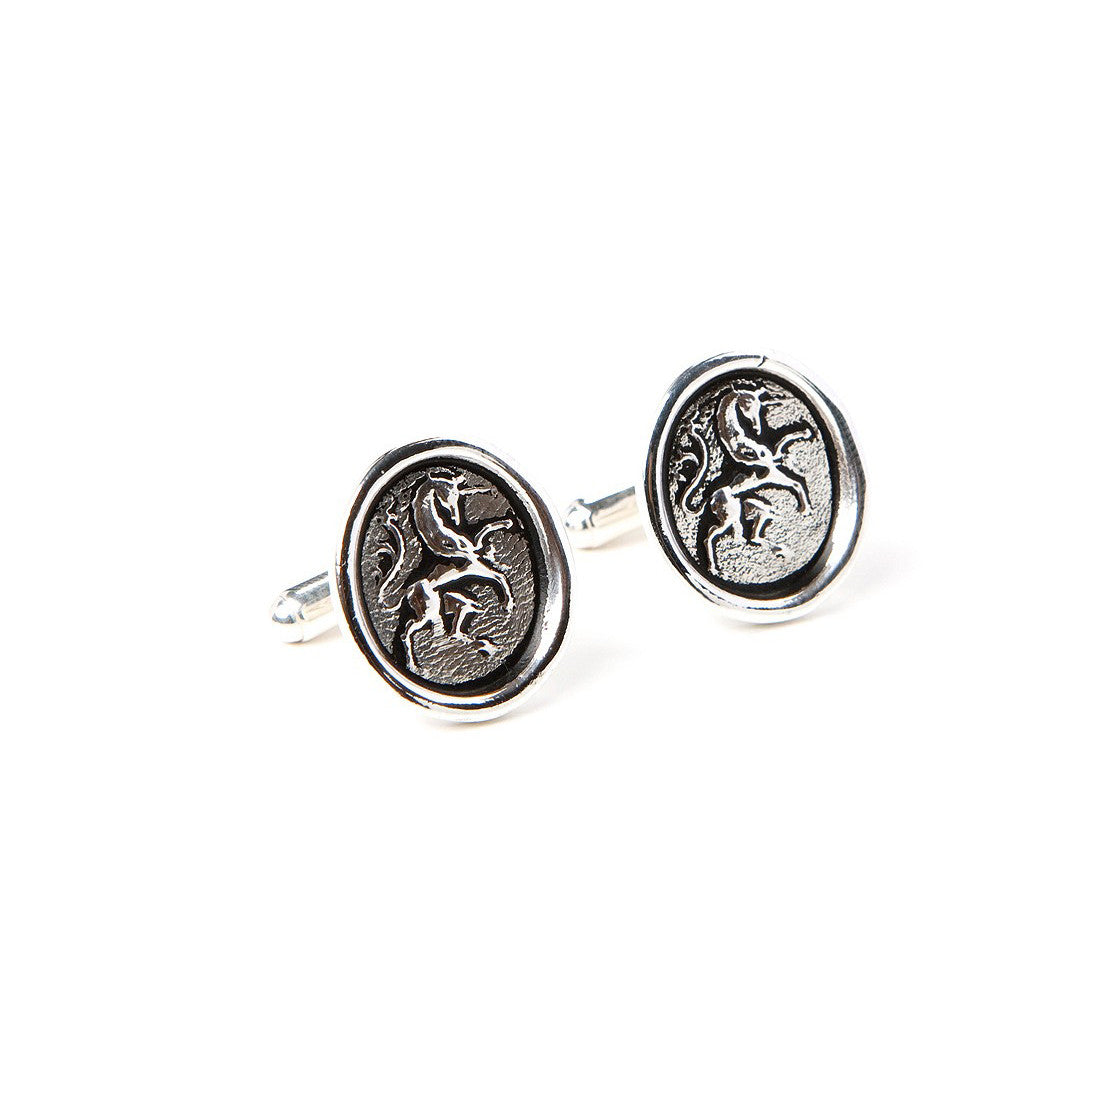 Silver wax seal unicorn cufflinks for men